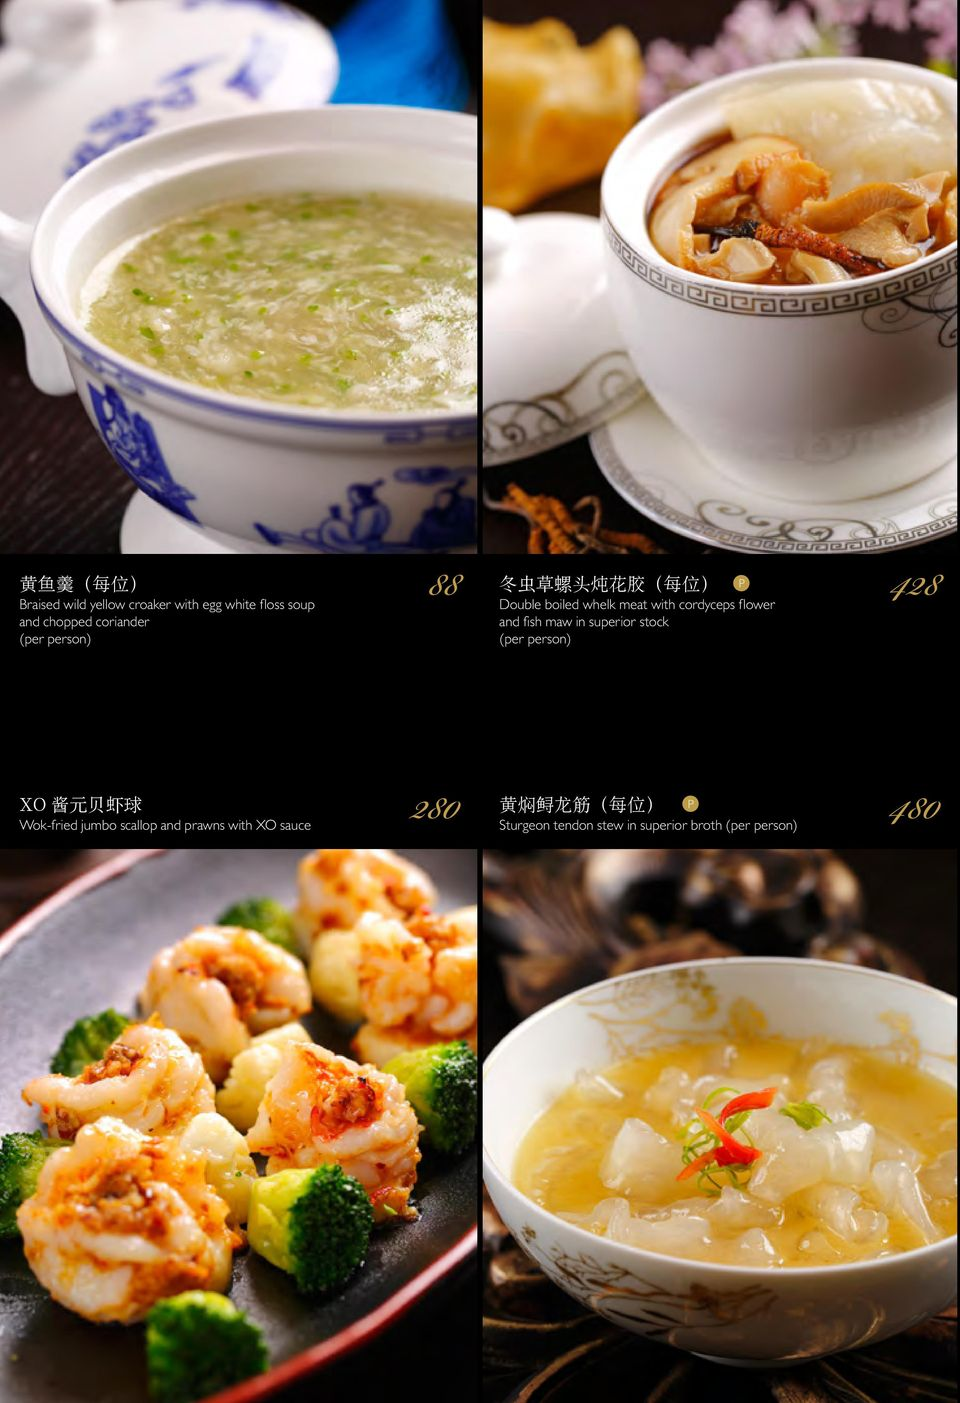 flower and fish maw in superior stock 428 XO 酱 元 贝 虾 球 Wok-fried jumbo scallop